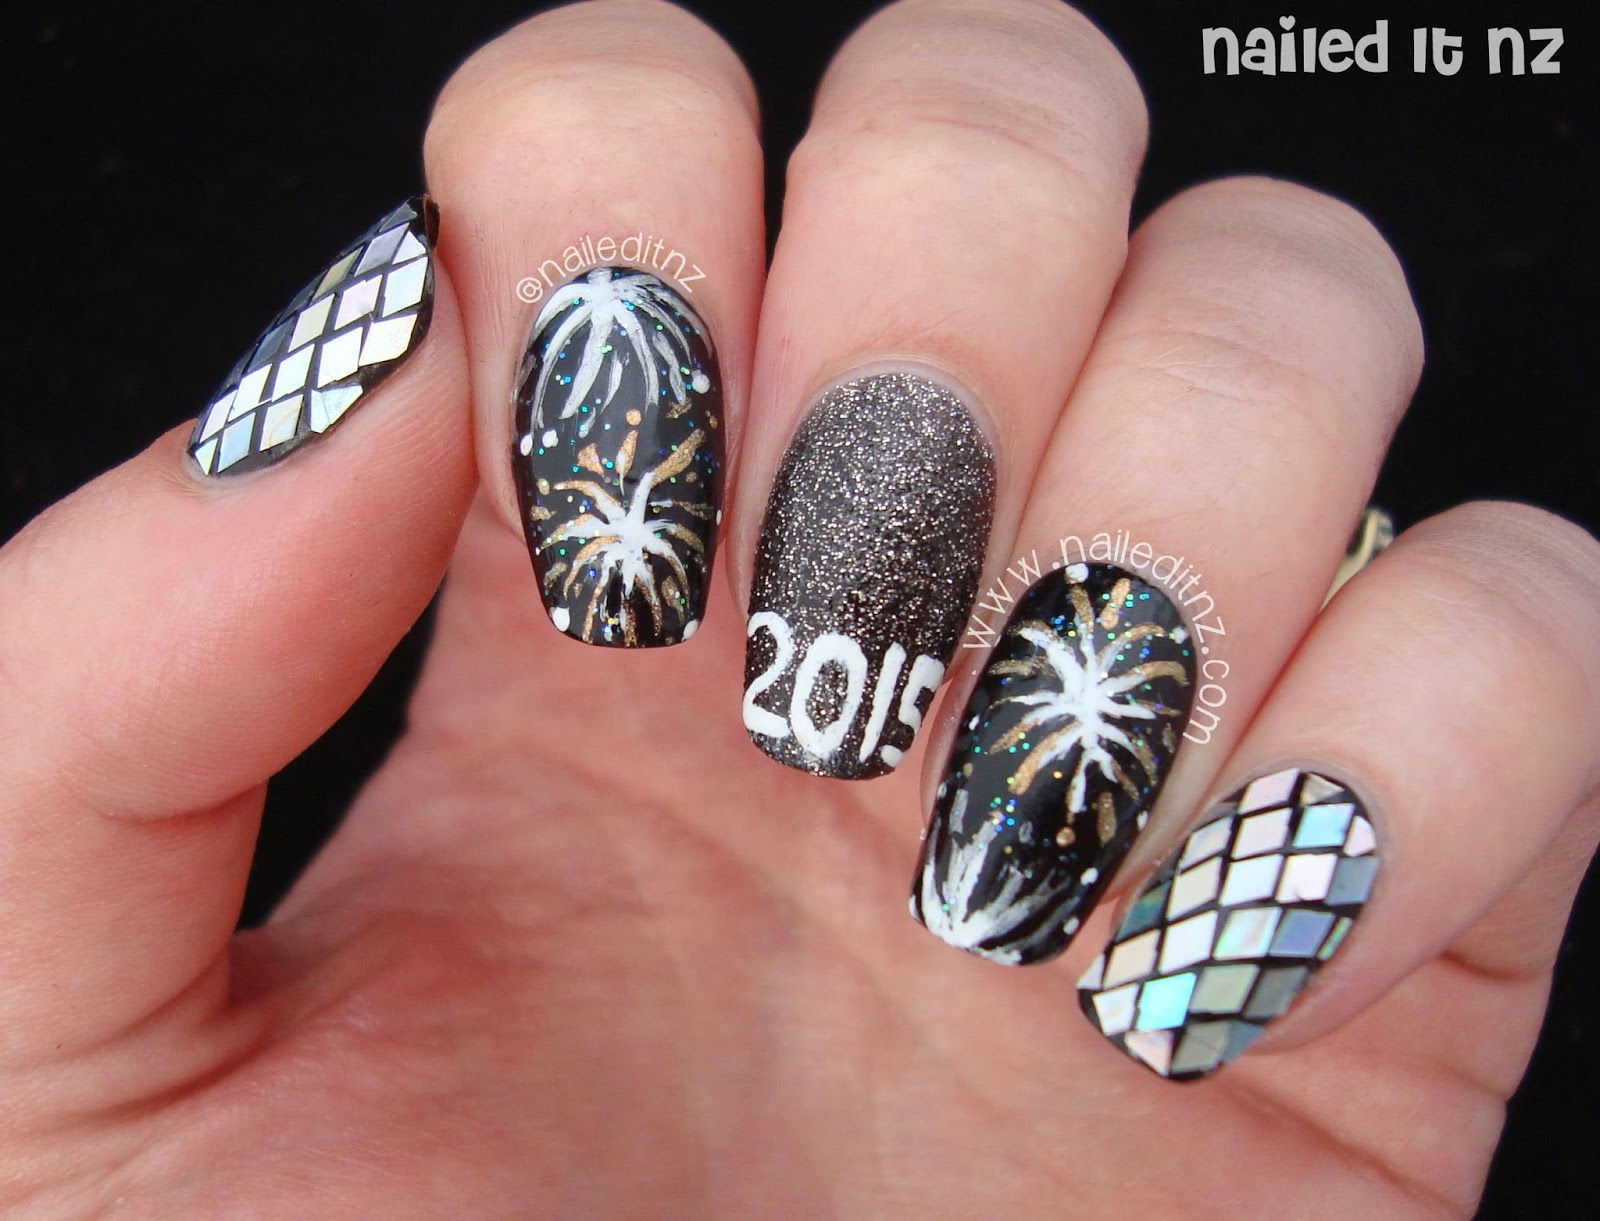 Nailed It NZ New Years Nail Art 2015 Blogging Resolutions